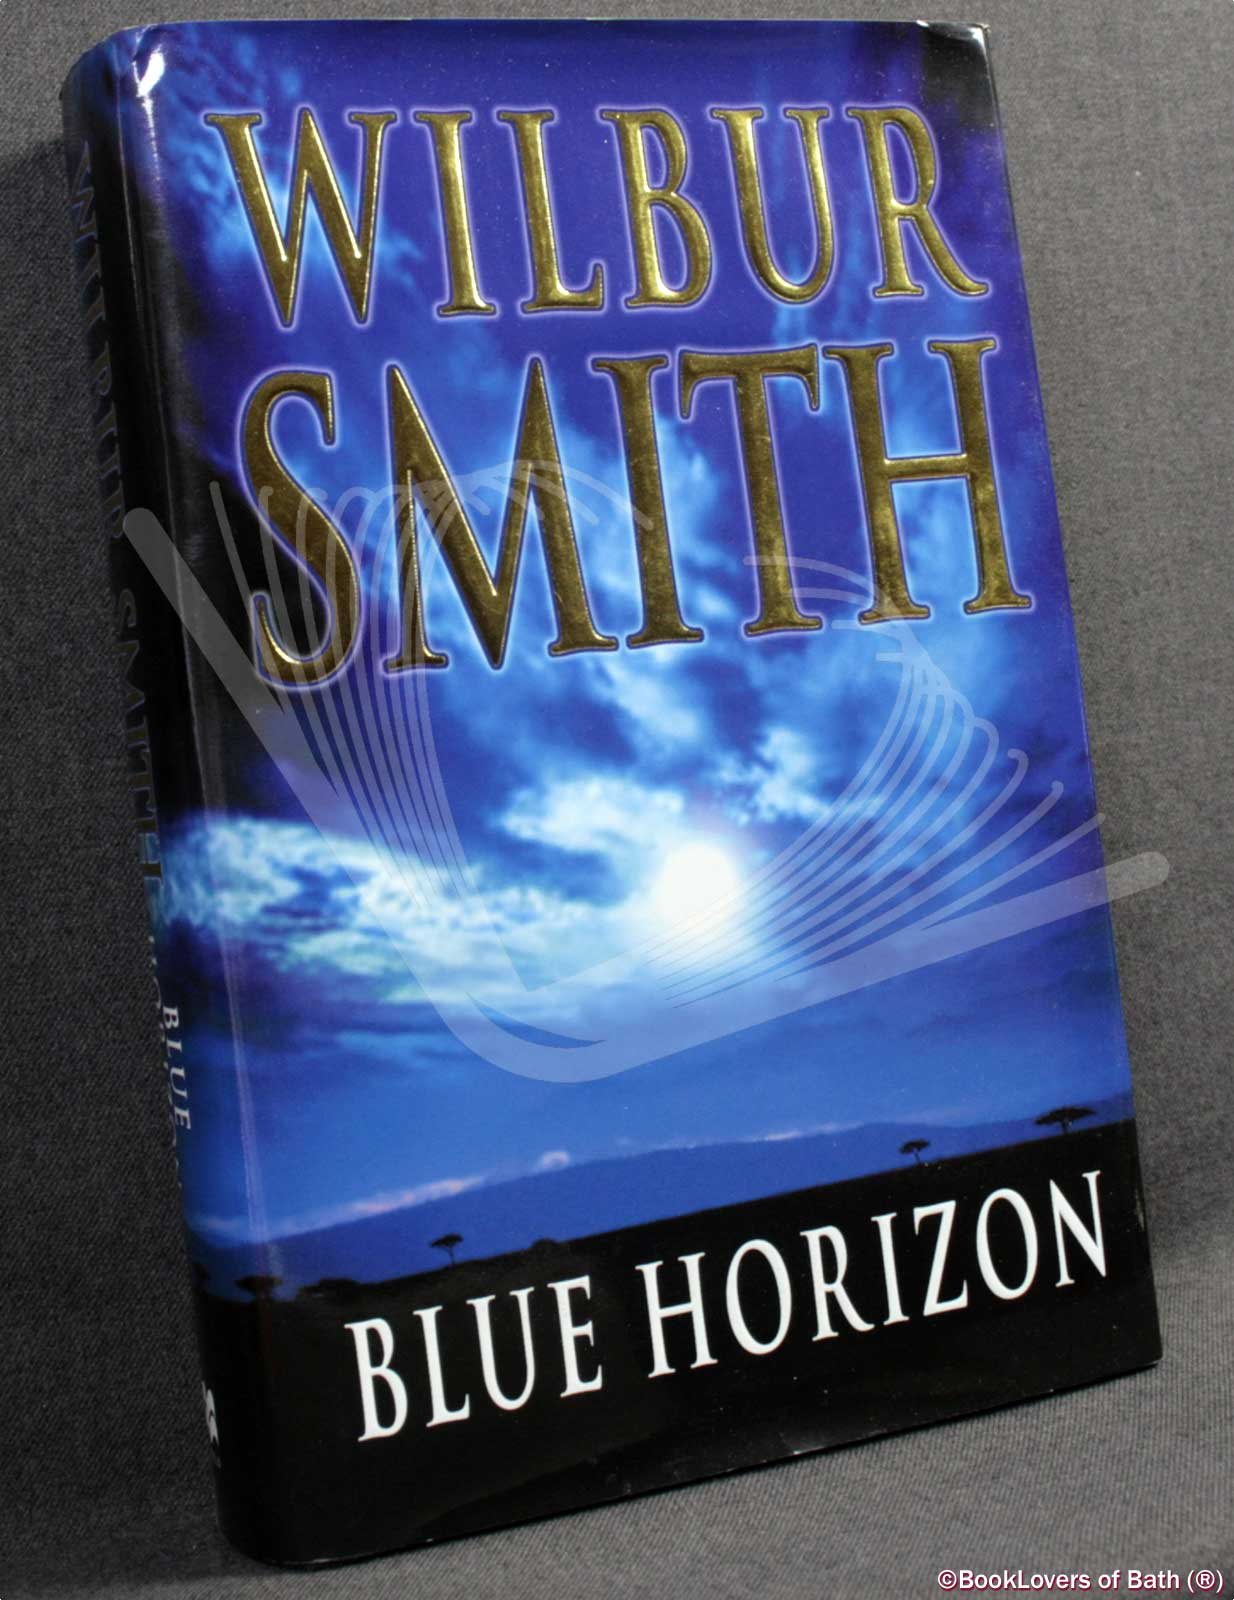 Blue Horizon by Wilbur Smith, 2004 paperback, Courtney novel, free shipping